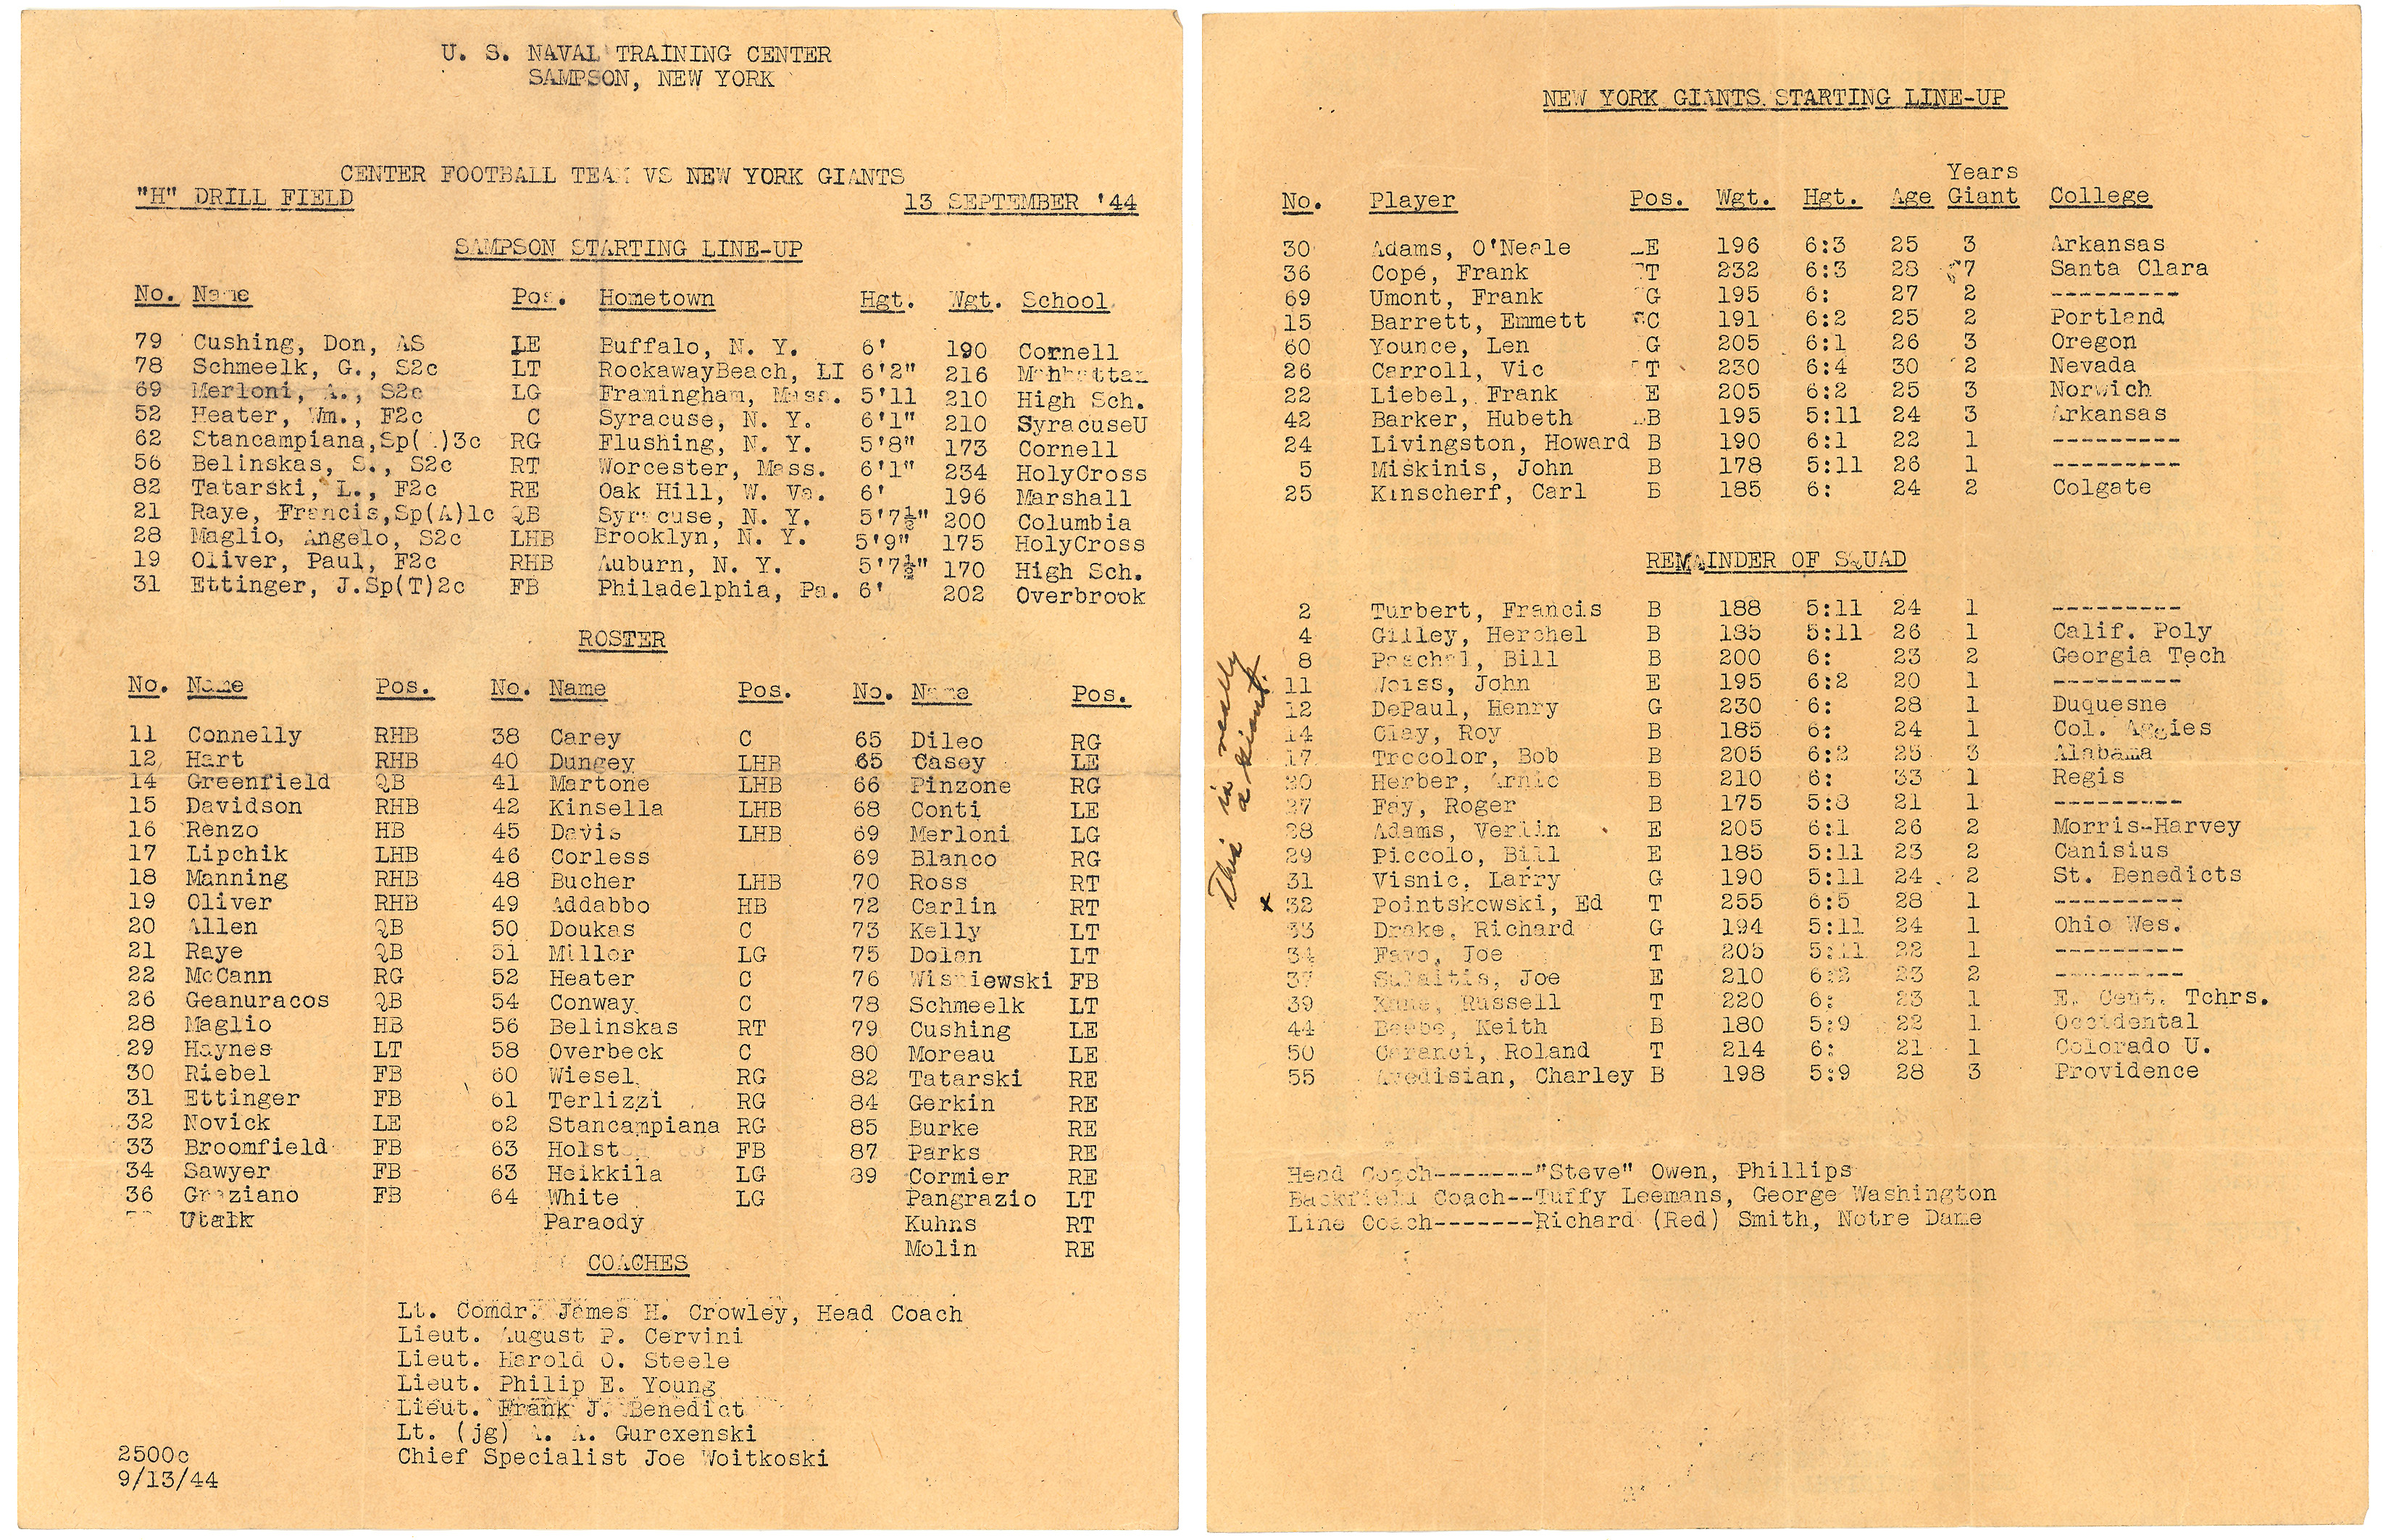 New York Giants Preseason Football Game Roster (September 13, 1944) - Courtesy of Rev. Mike Moran